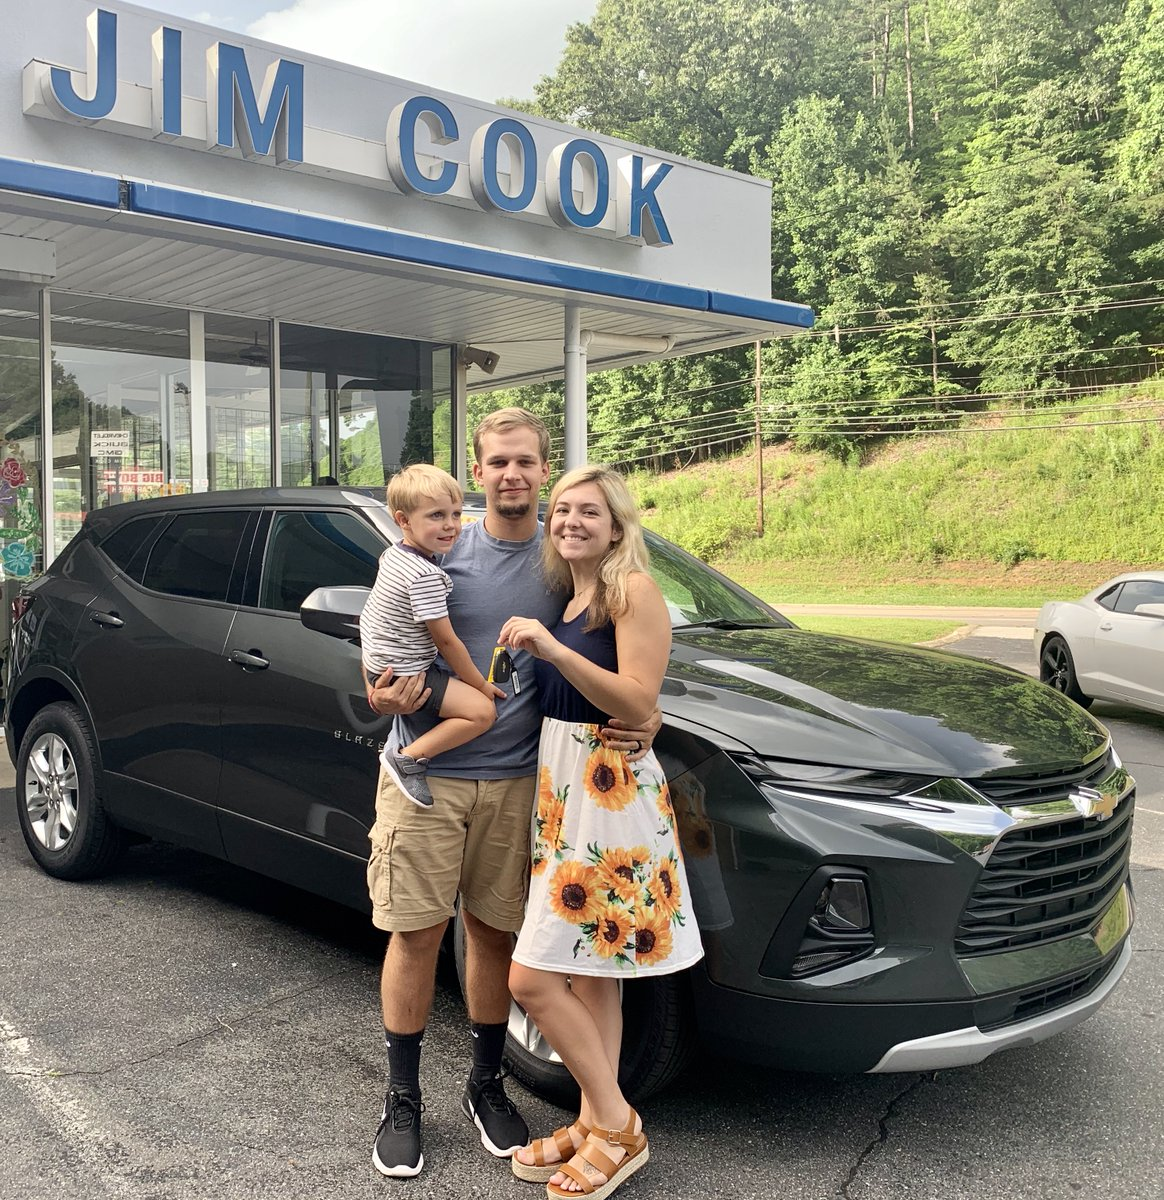 Congratulations to Kayla and Ryan on the purchase of their new #ChevyBlazer!! 🎊 We hope your family enjoys many miles in your new SUV! 😊 #JimCookChevrolet https://t.co/xRhH93gLMv